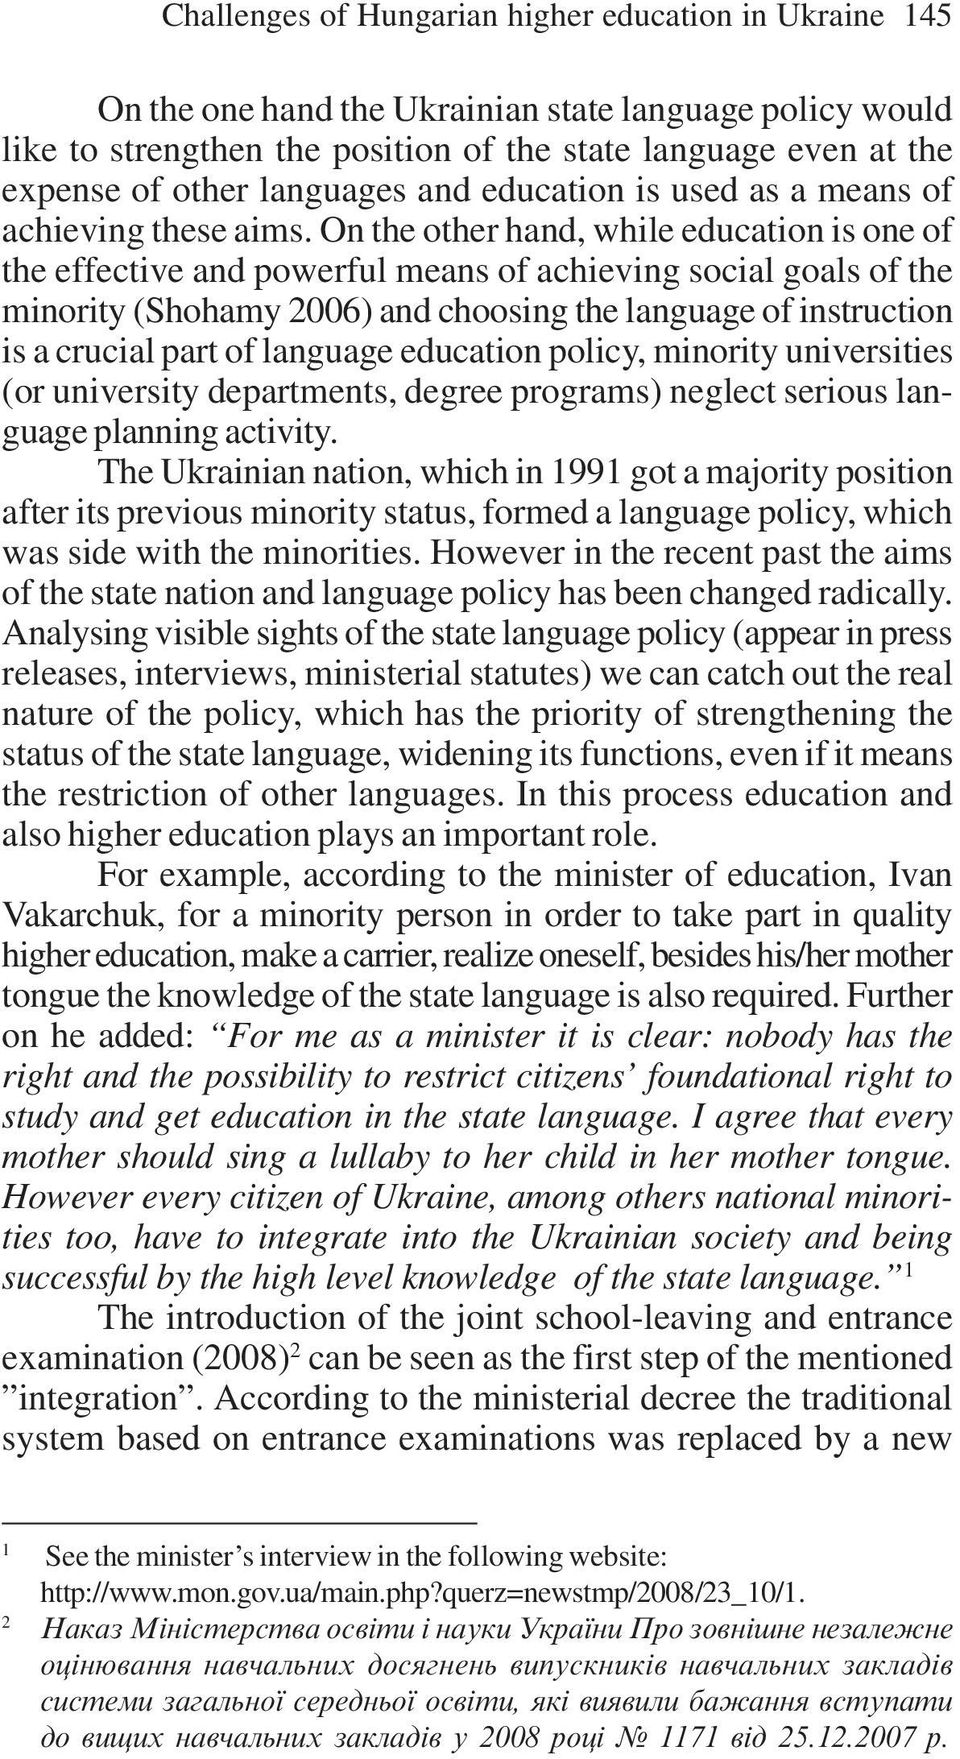 On the other hand, while education is one of the effective and powerful means of achieving social goals of the minority (Shohamy 2006) and choosing the language of instruction is a crucial part of